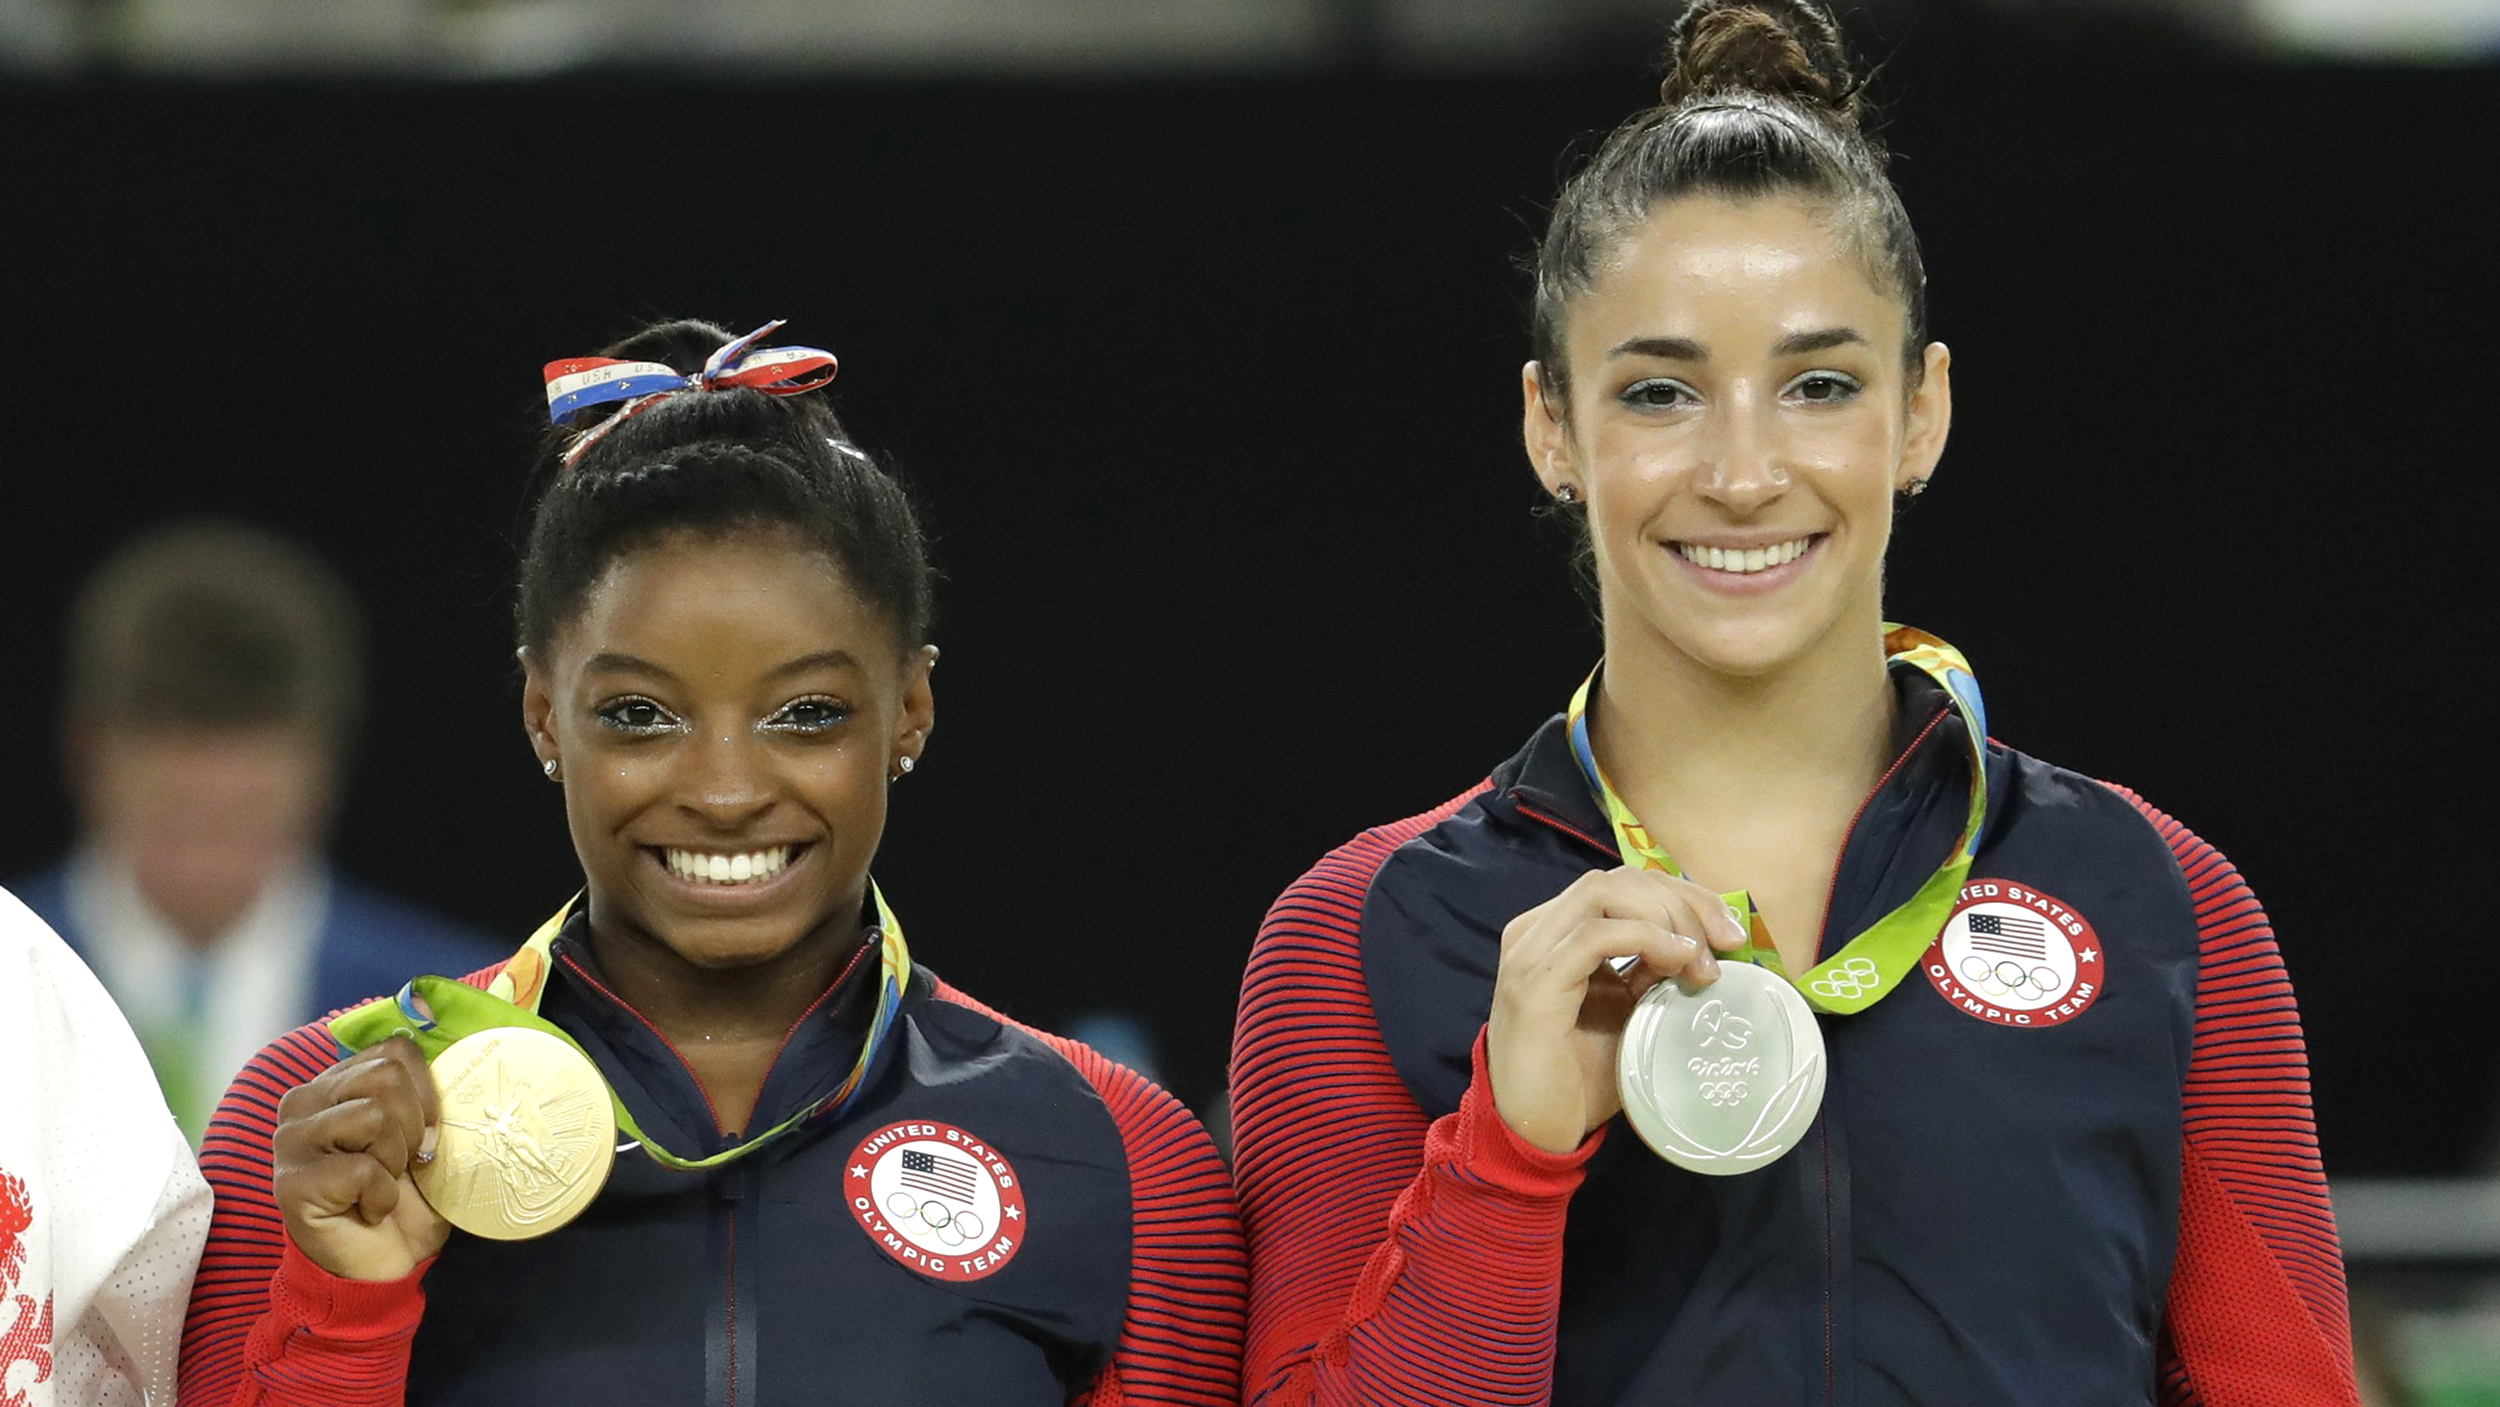 Will Aly Raisman And Simone Biles Return For 2020 Olympics